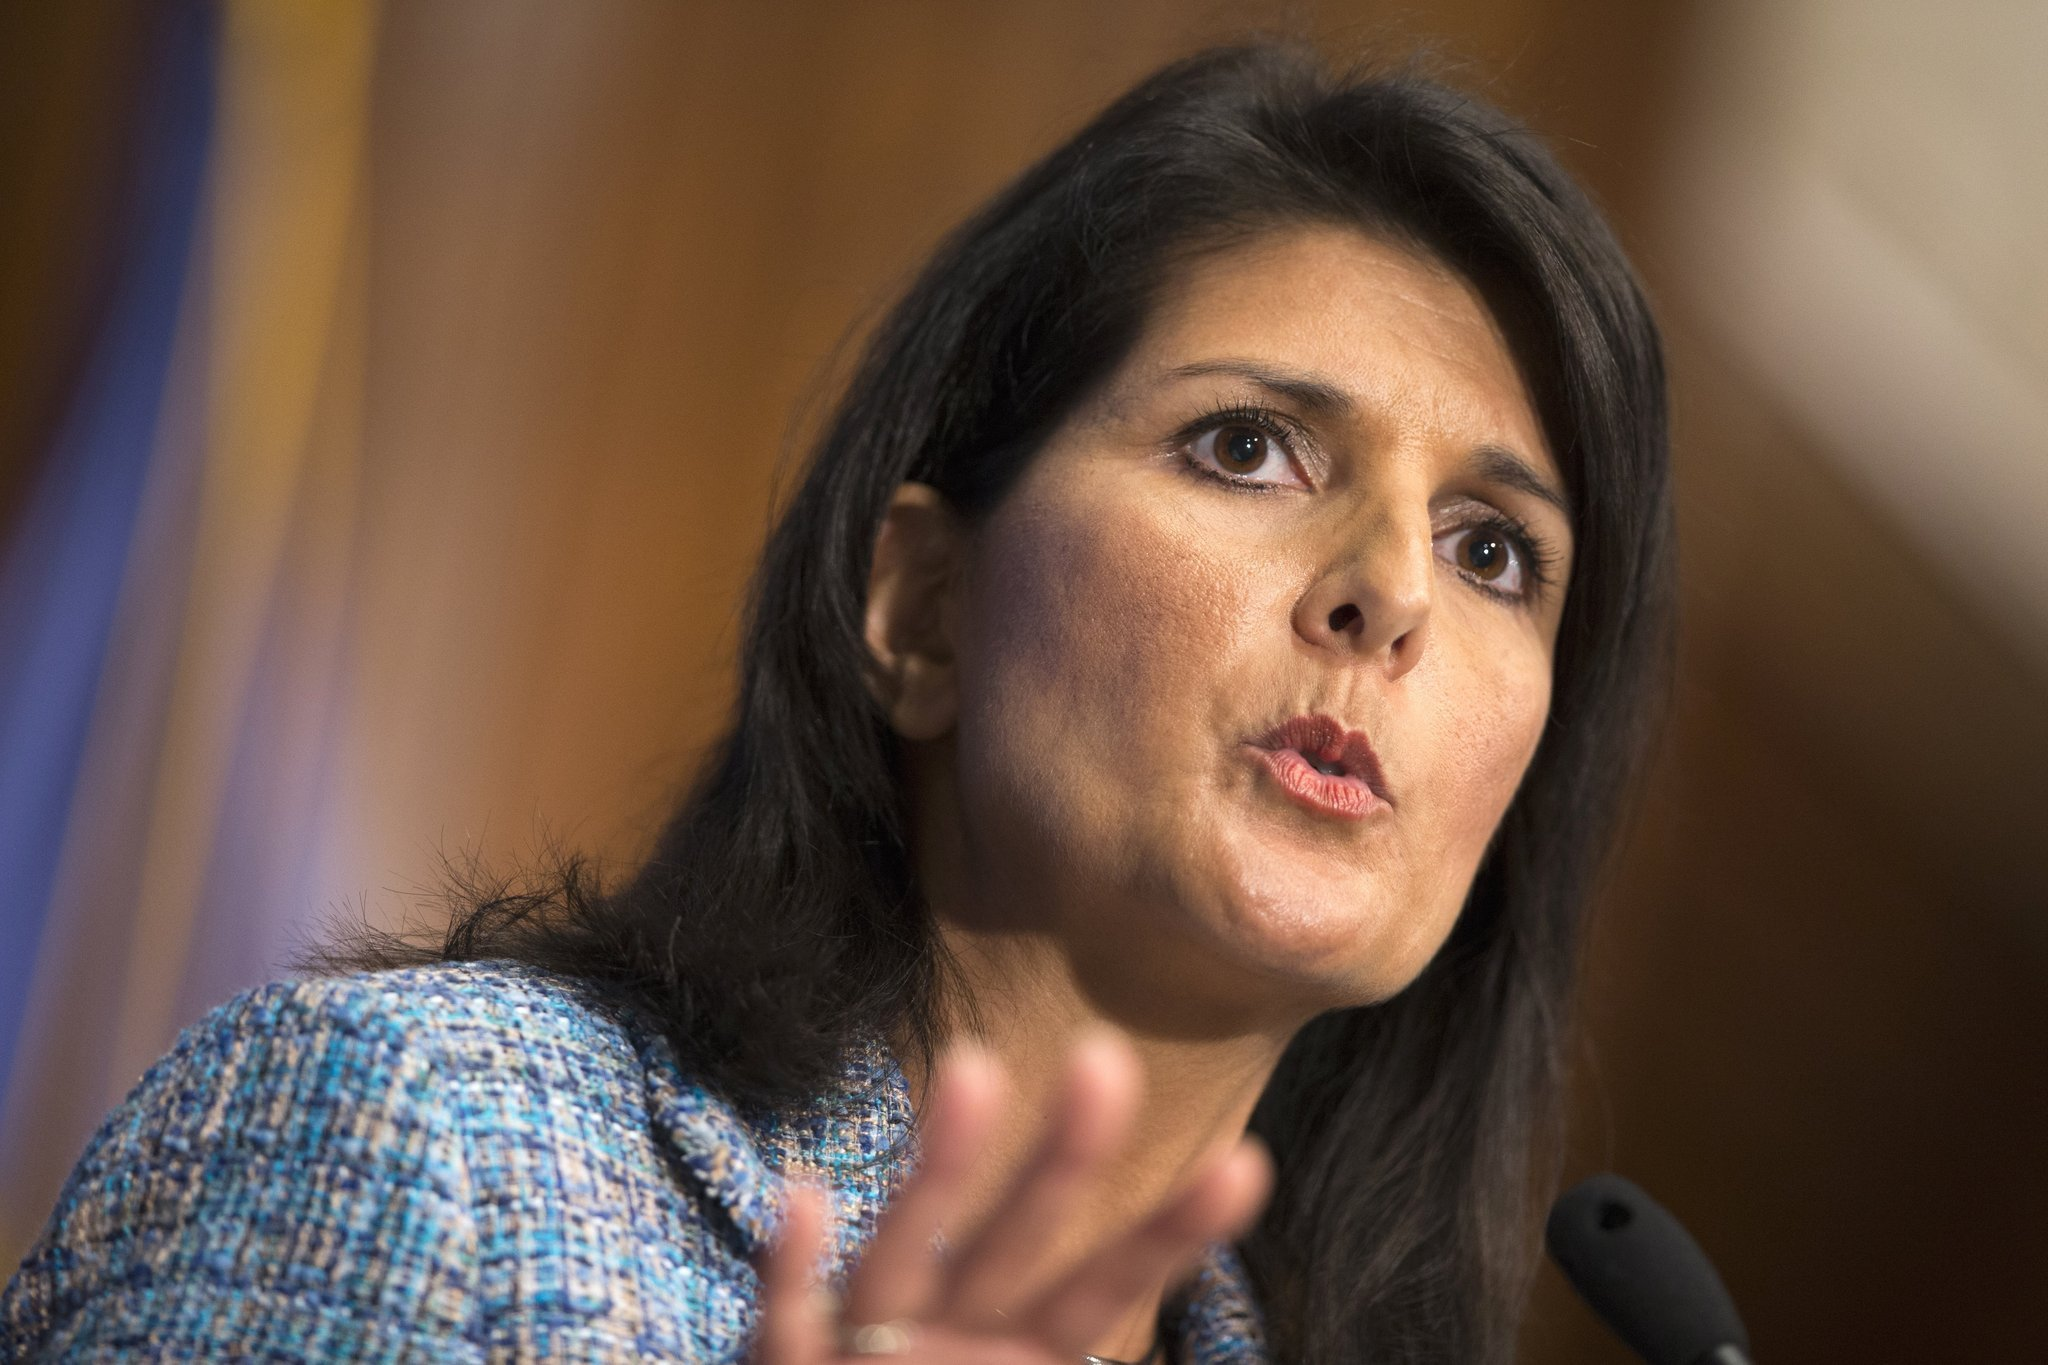 Nikki Haley warns Russia could use chemical weapons in New York